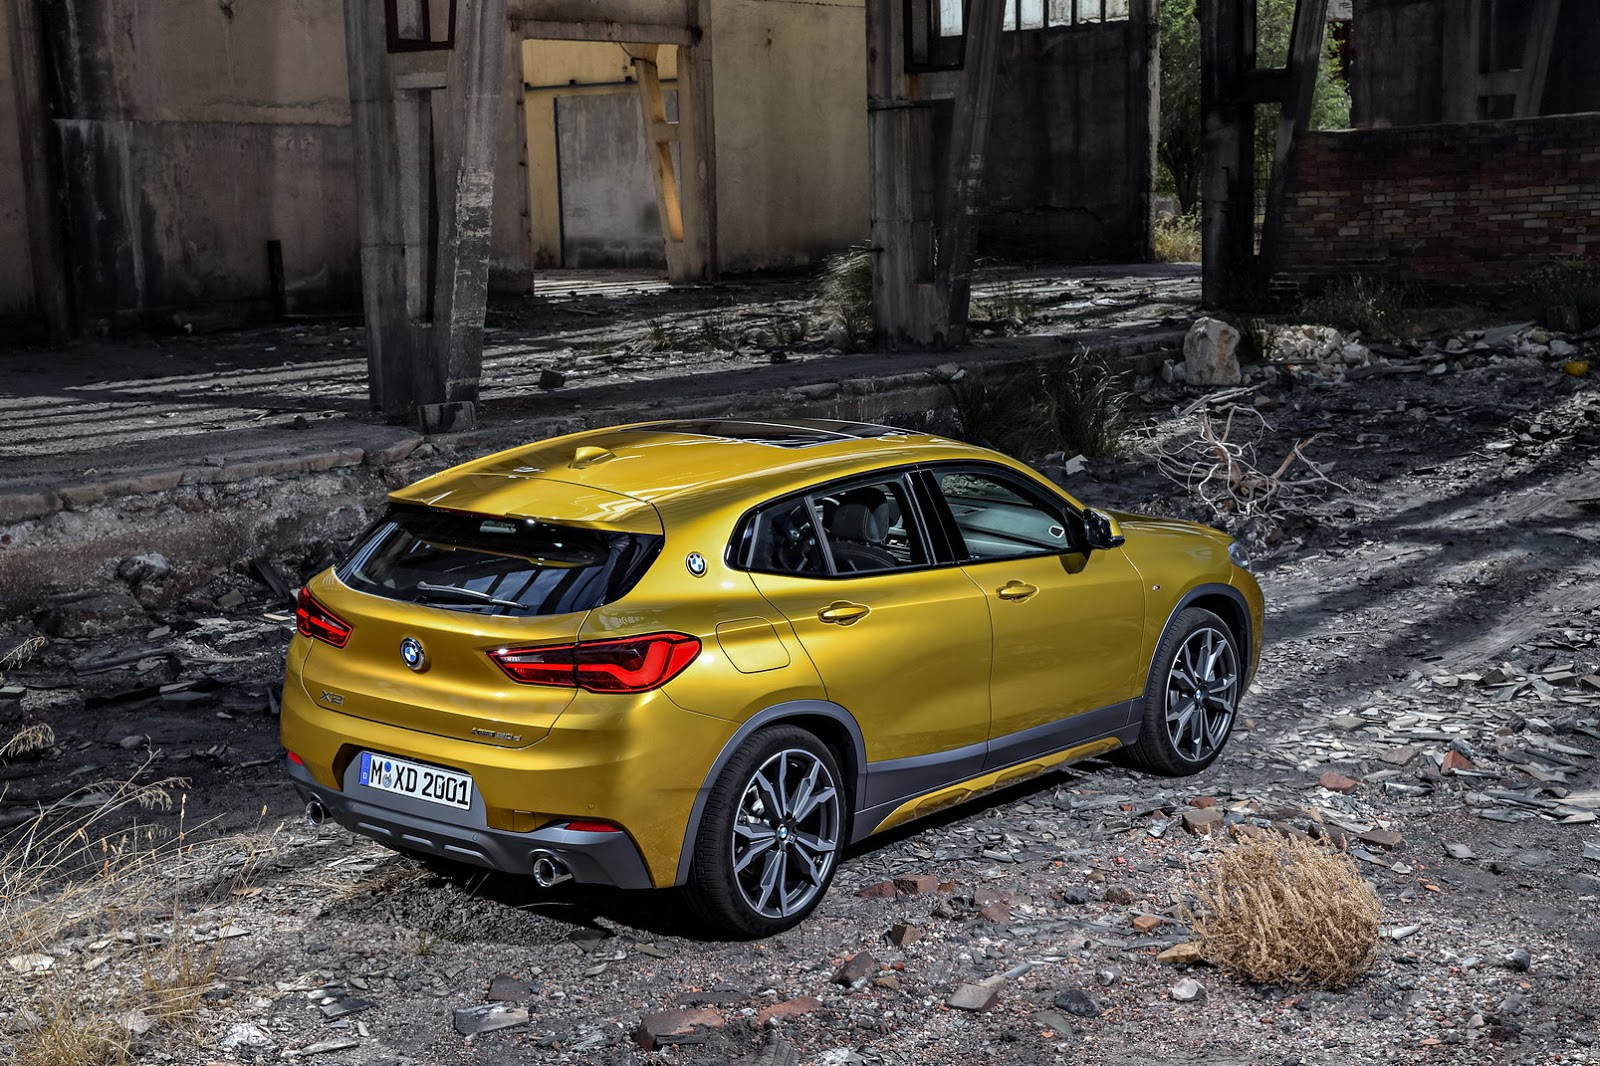 2018 bmw x2 engines leaked m35i has exactly 300 hp autoevolution. Black Bedroom Furniture Sets. Home Design Ideas